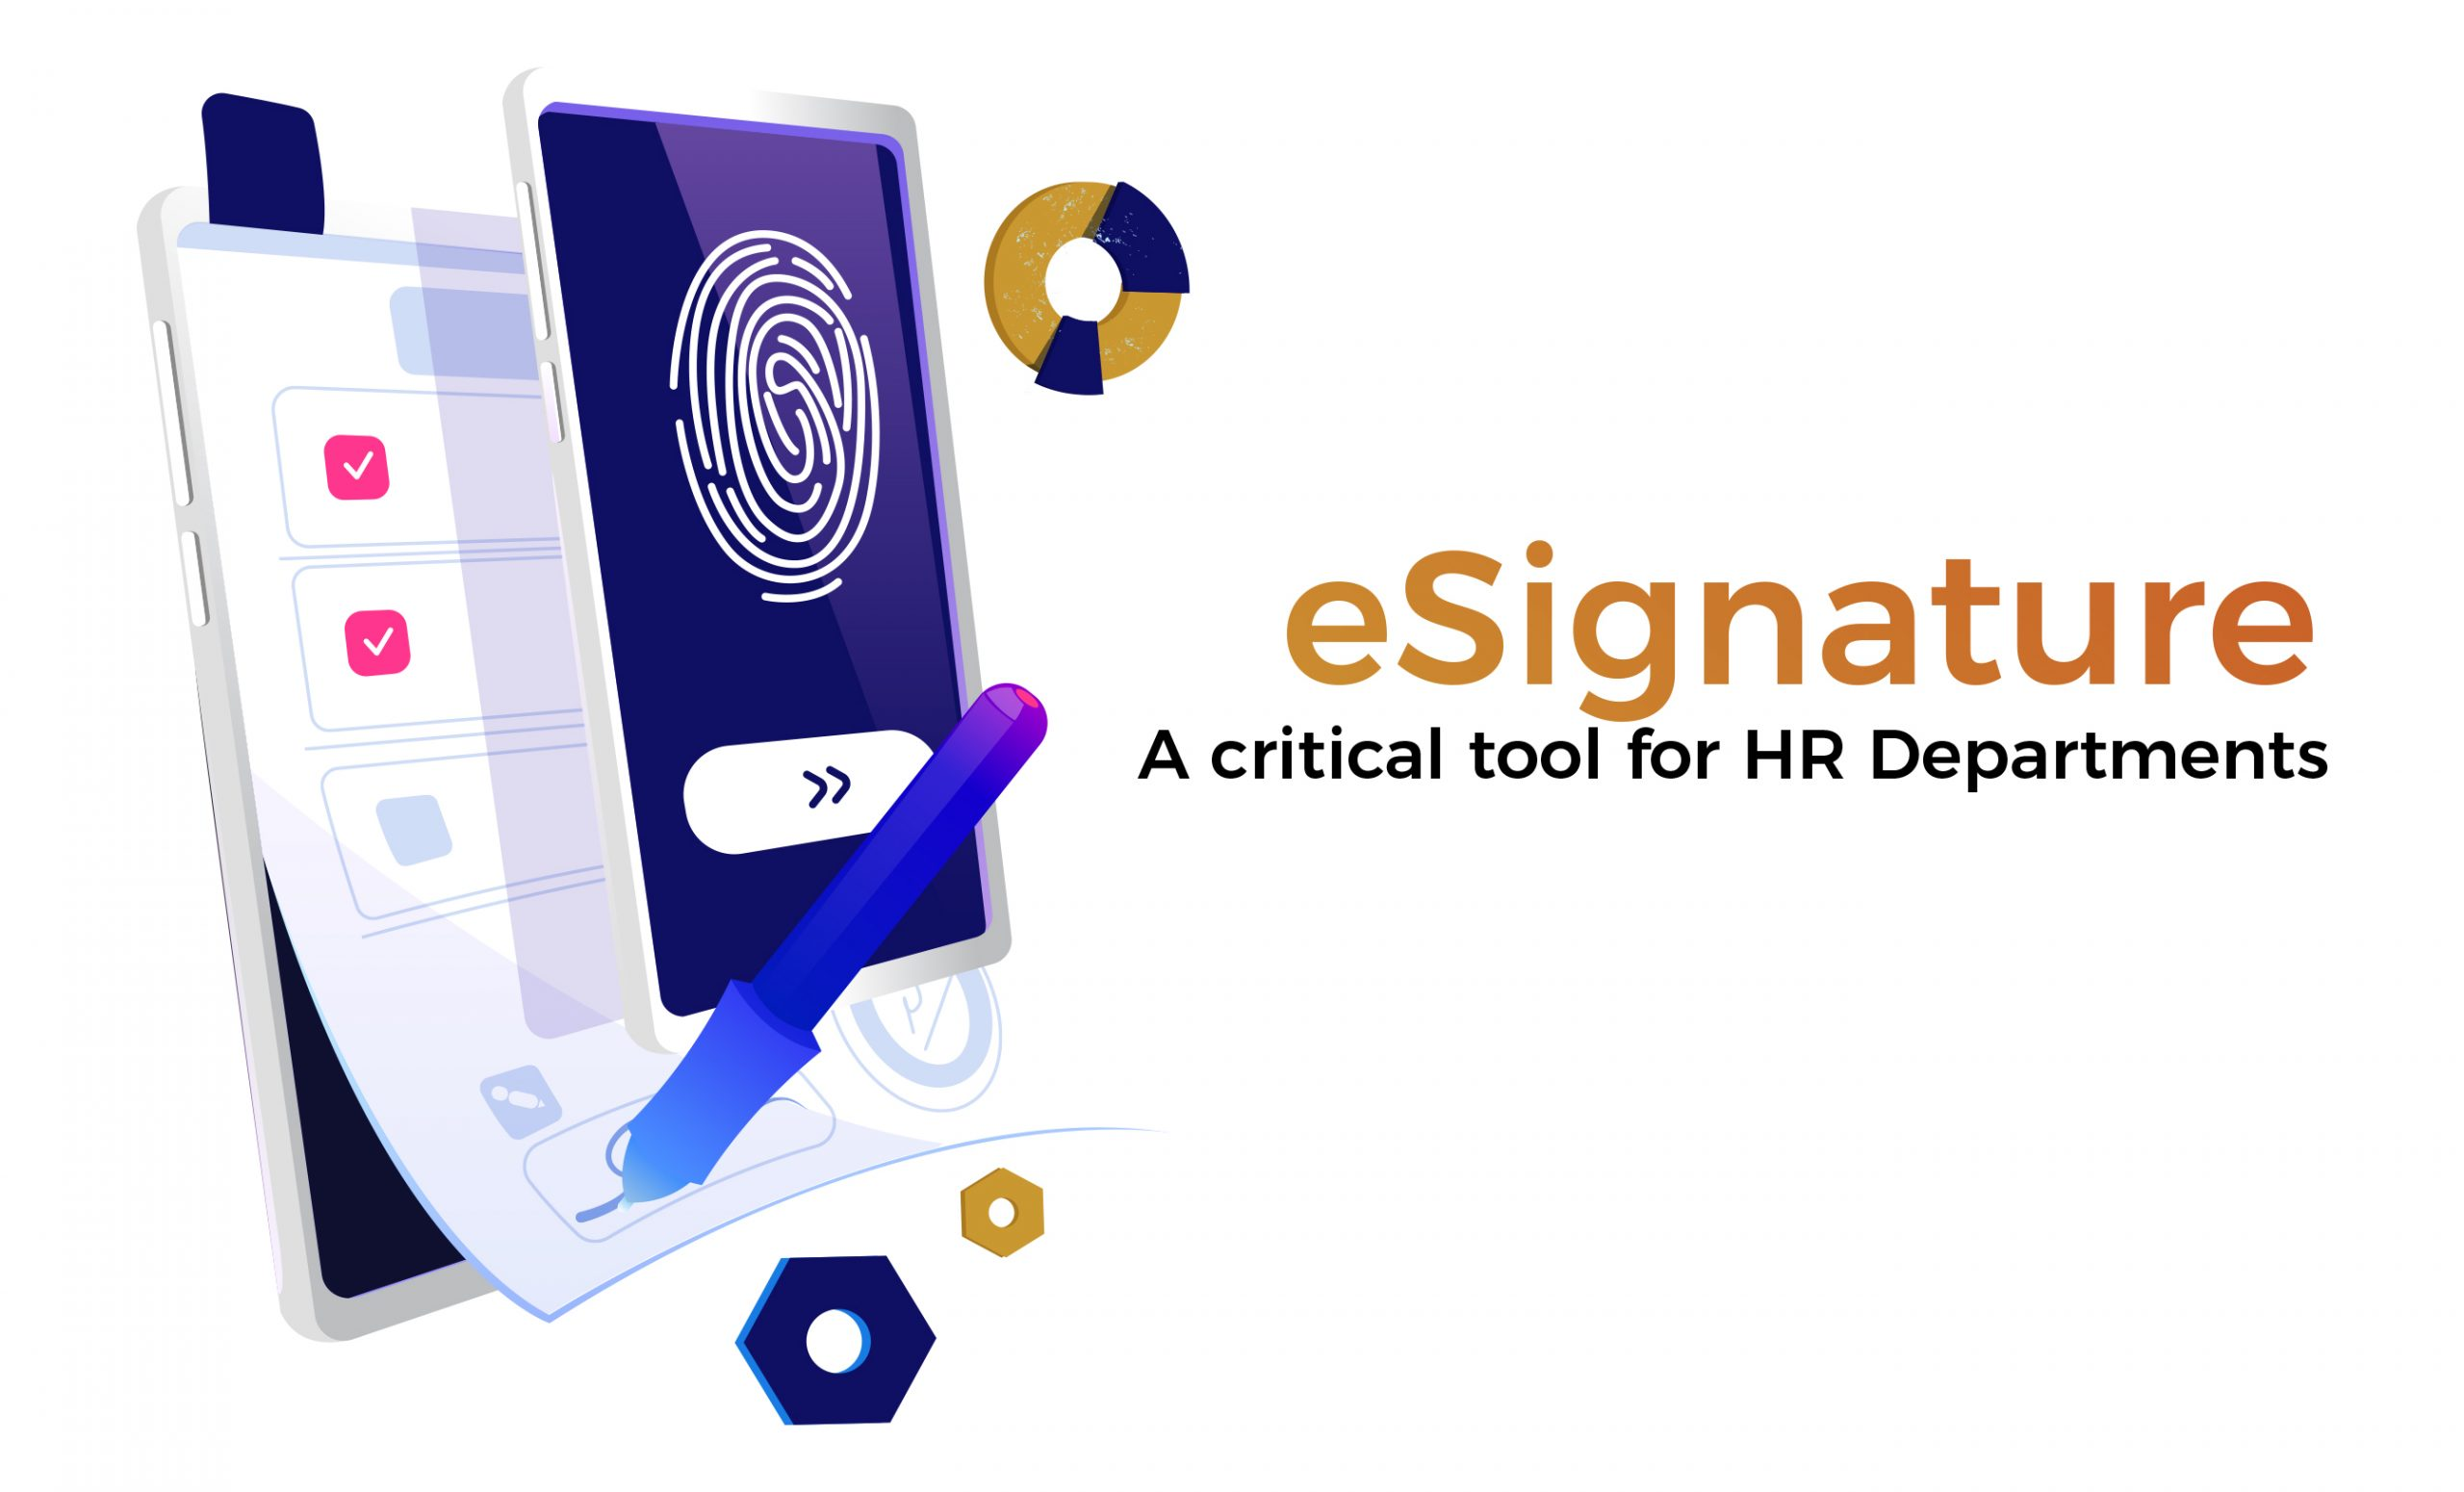 eSignature – A critical tool for HR Departments